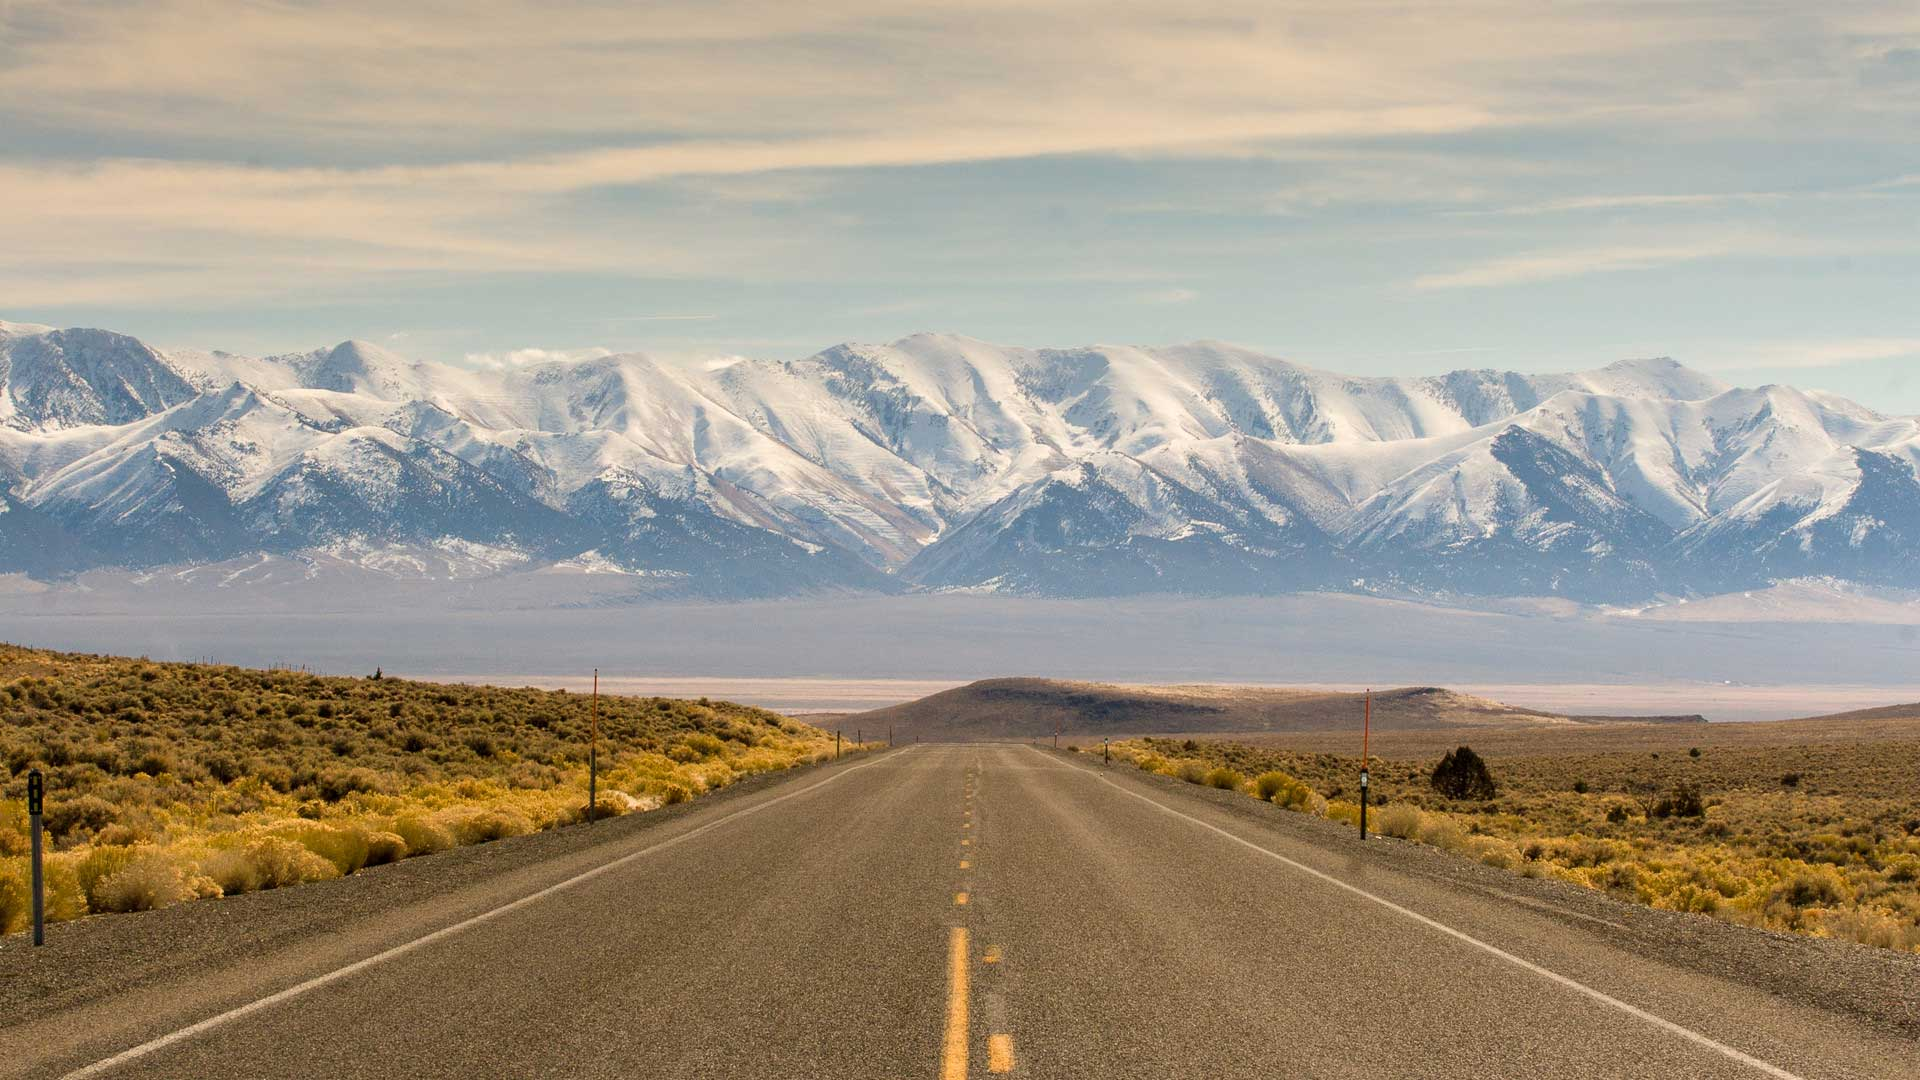 Crédito foto: https://www.reddit.com/r/pics/comments/1nh1bk/us_50_in_nevada_heading_east_on_the_loneliest/